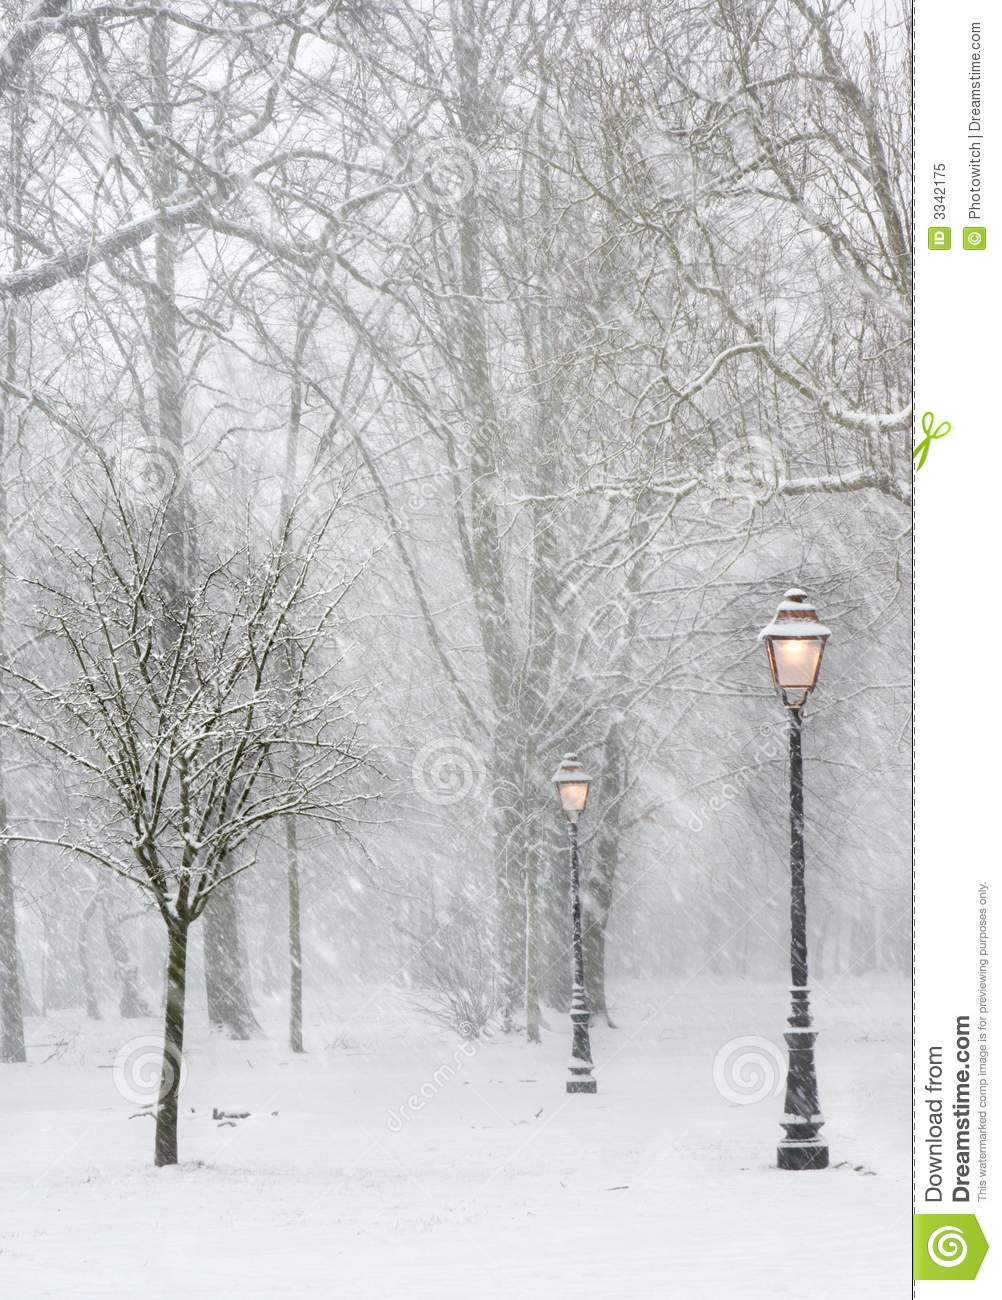 Lampposts in the snow